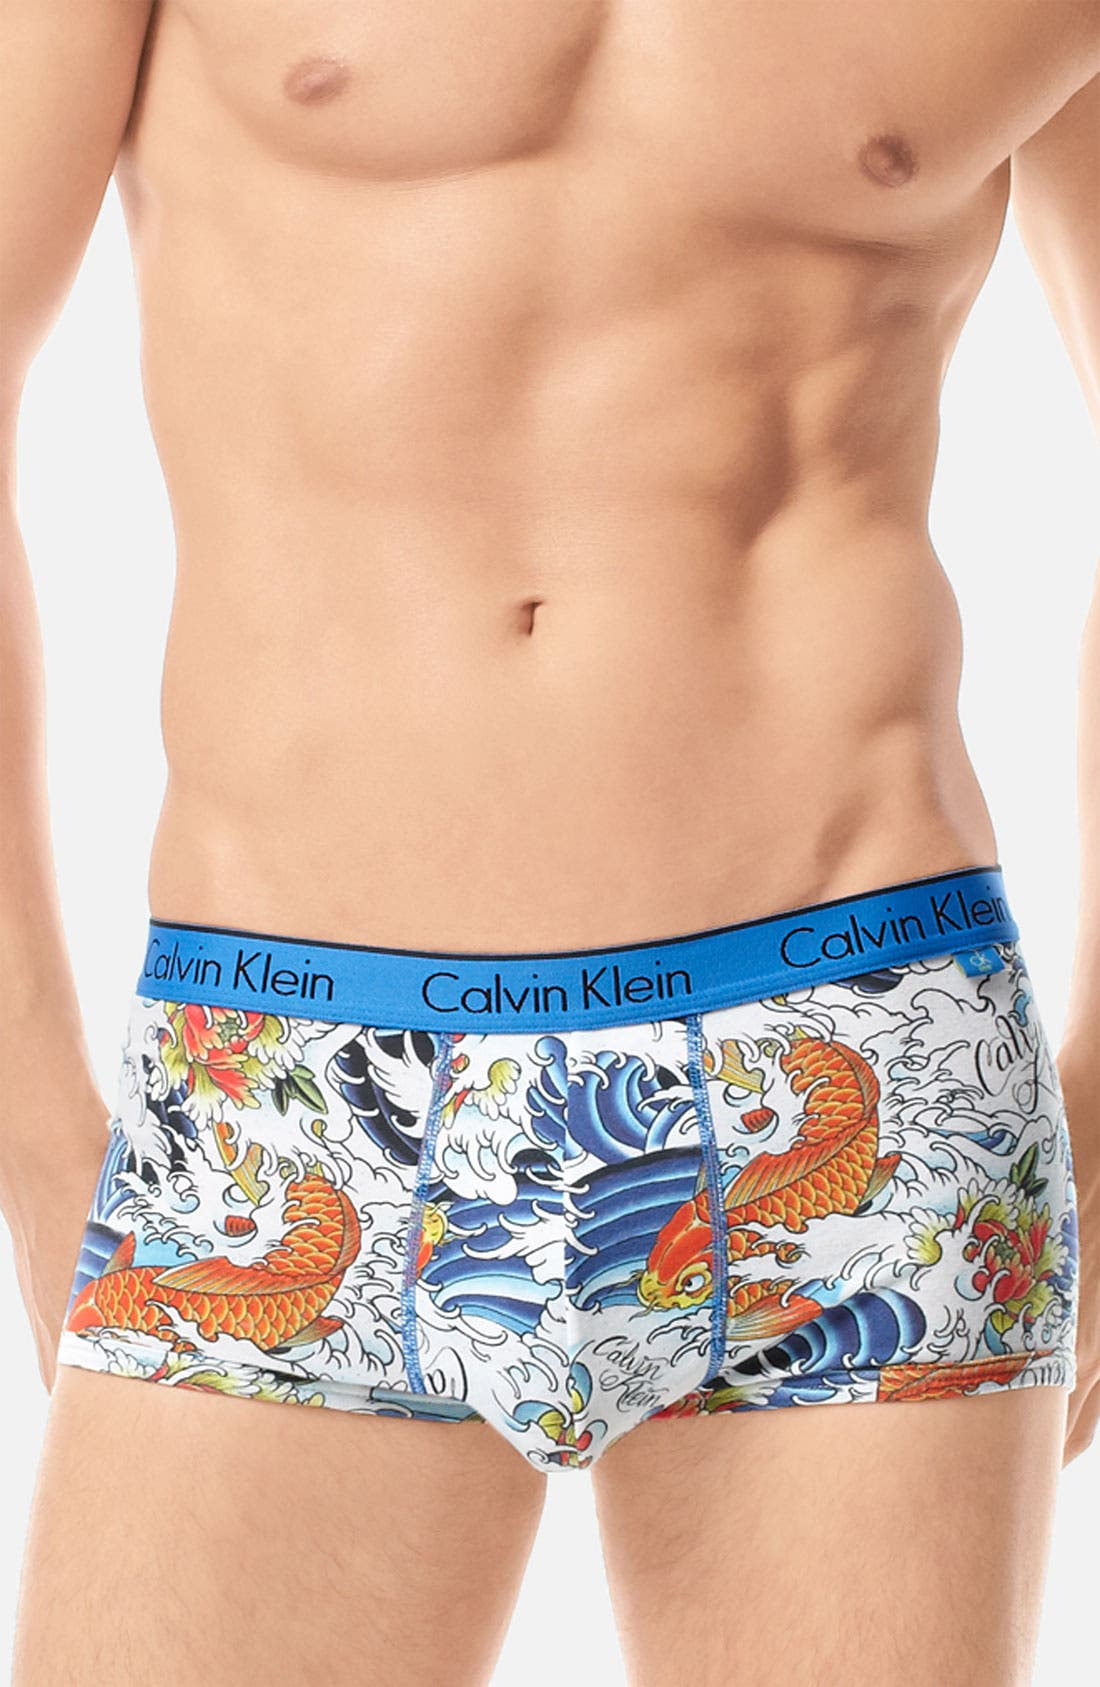 Alternate Image 1 Selected - Calvin Klein 'ck one - Tattoo' Low Rise Trunks